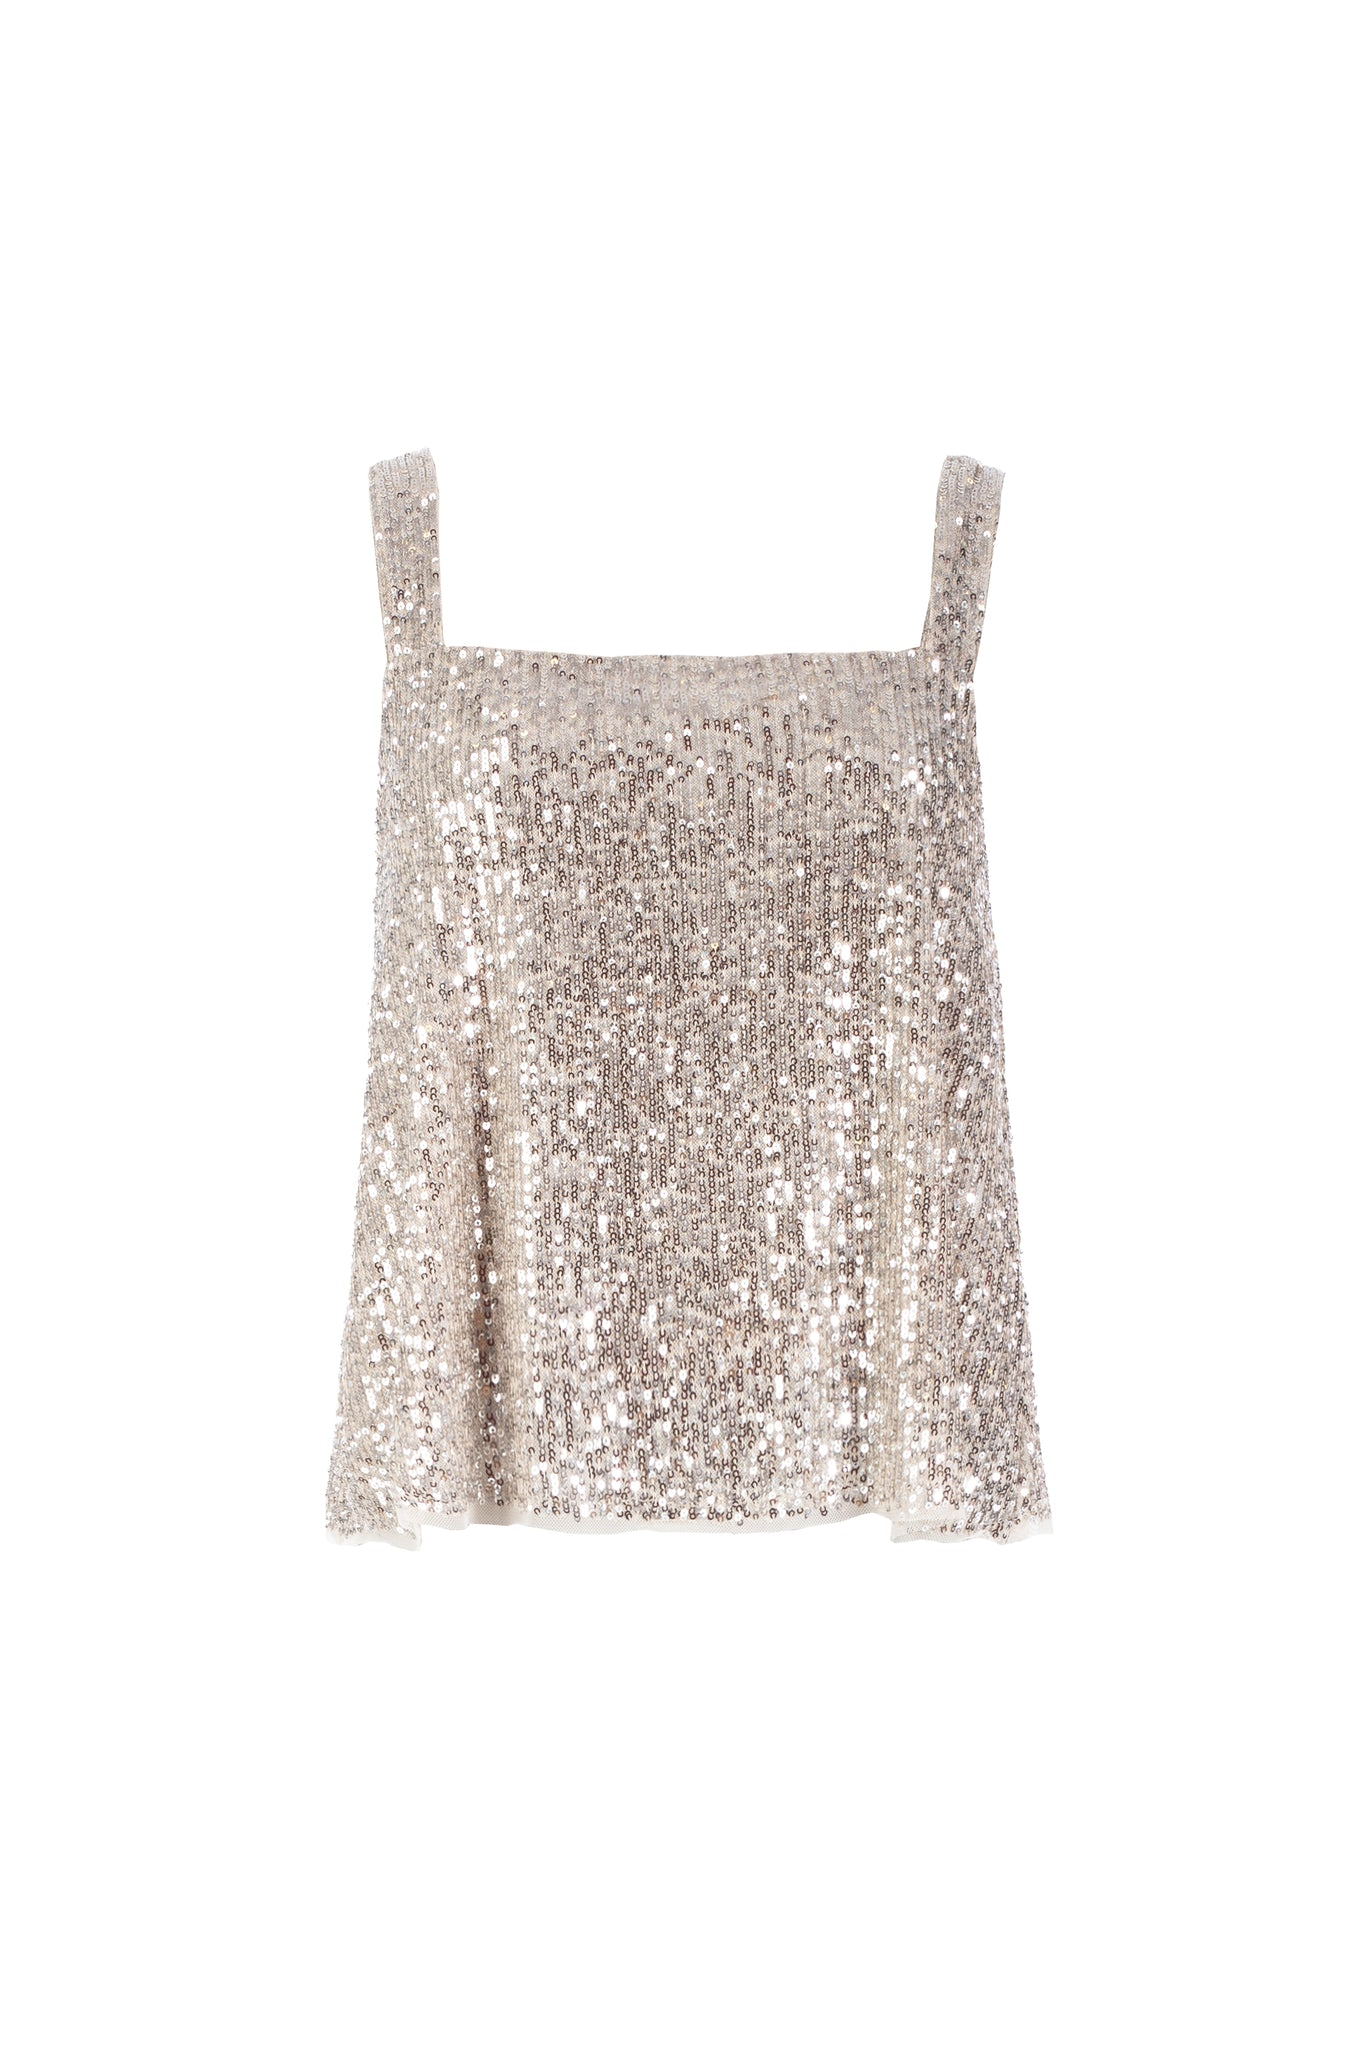 9774 - OUANI - SEQUINS TOP -BYOU by Patricia Gouveia